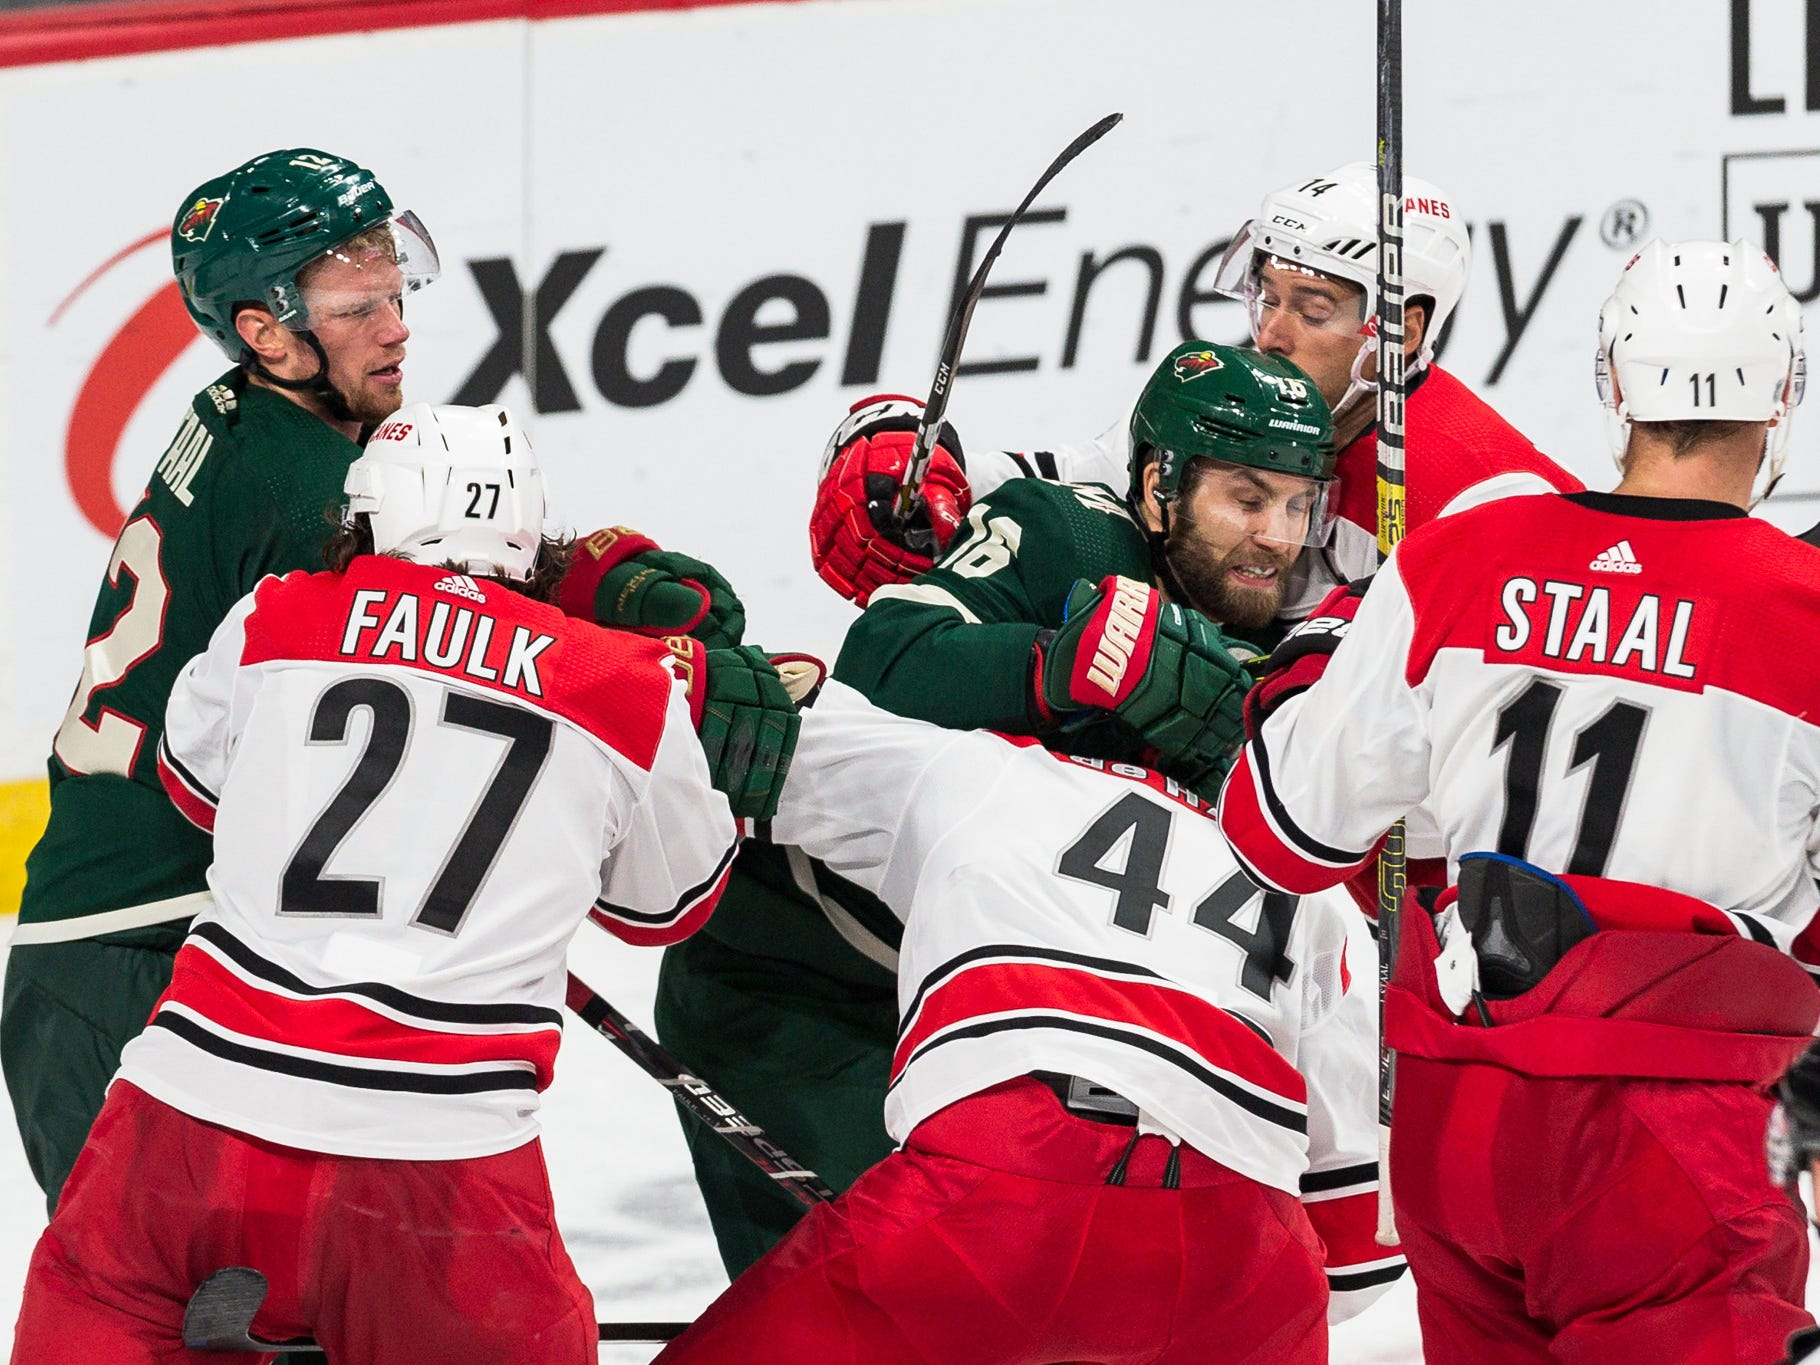 Oct 13: Multiple fights breakout between the Wild and Hurricanes